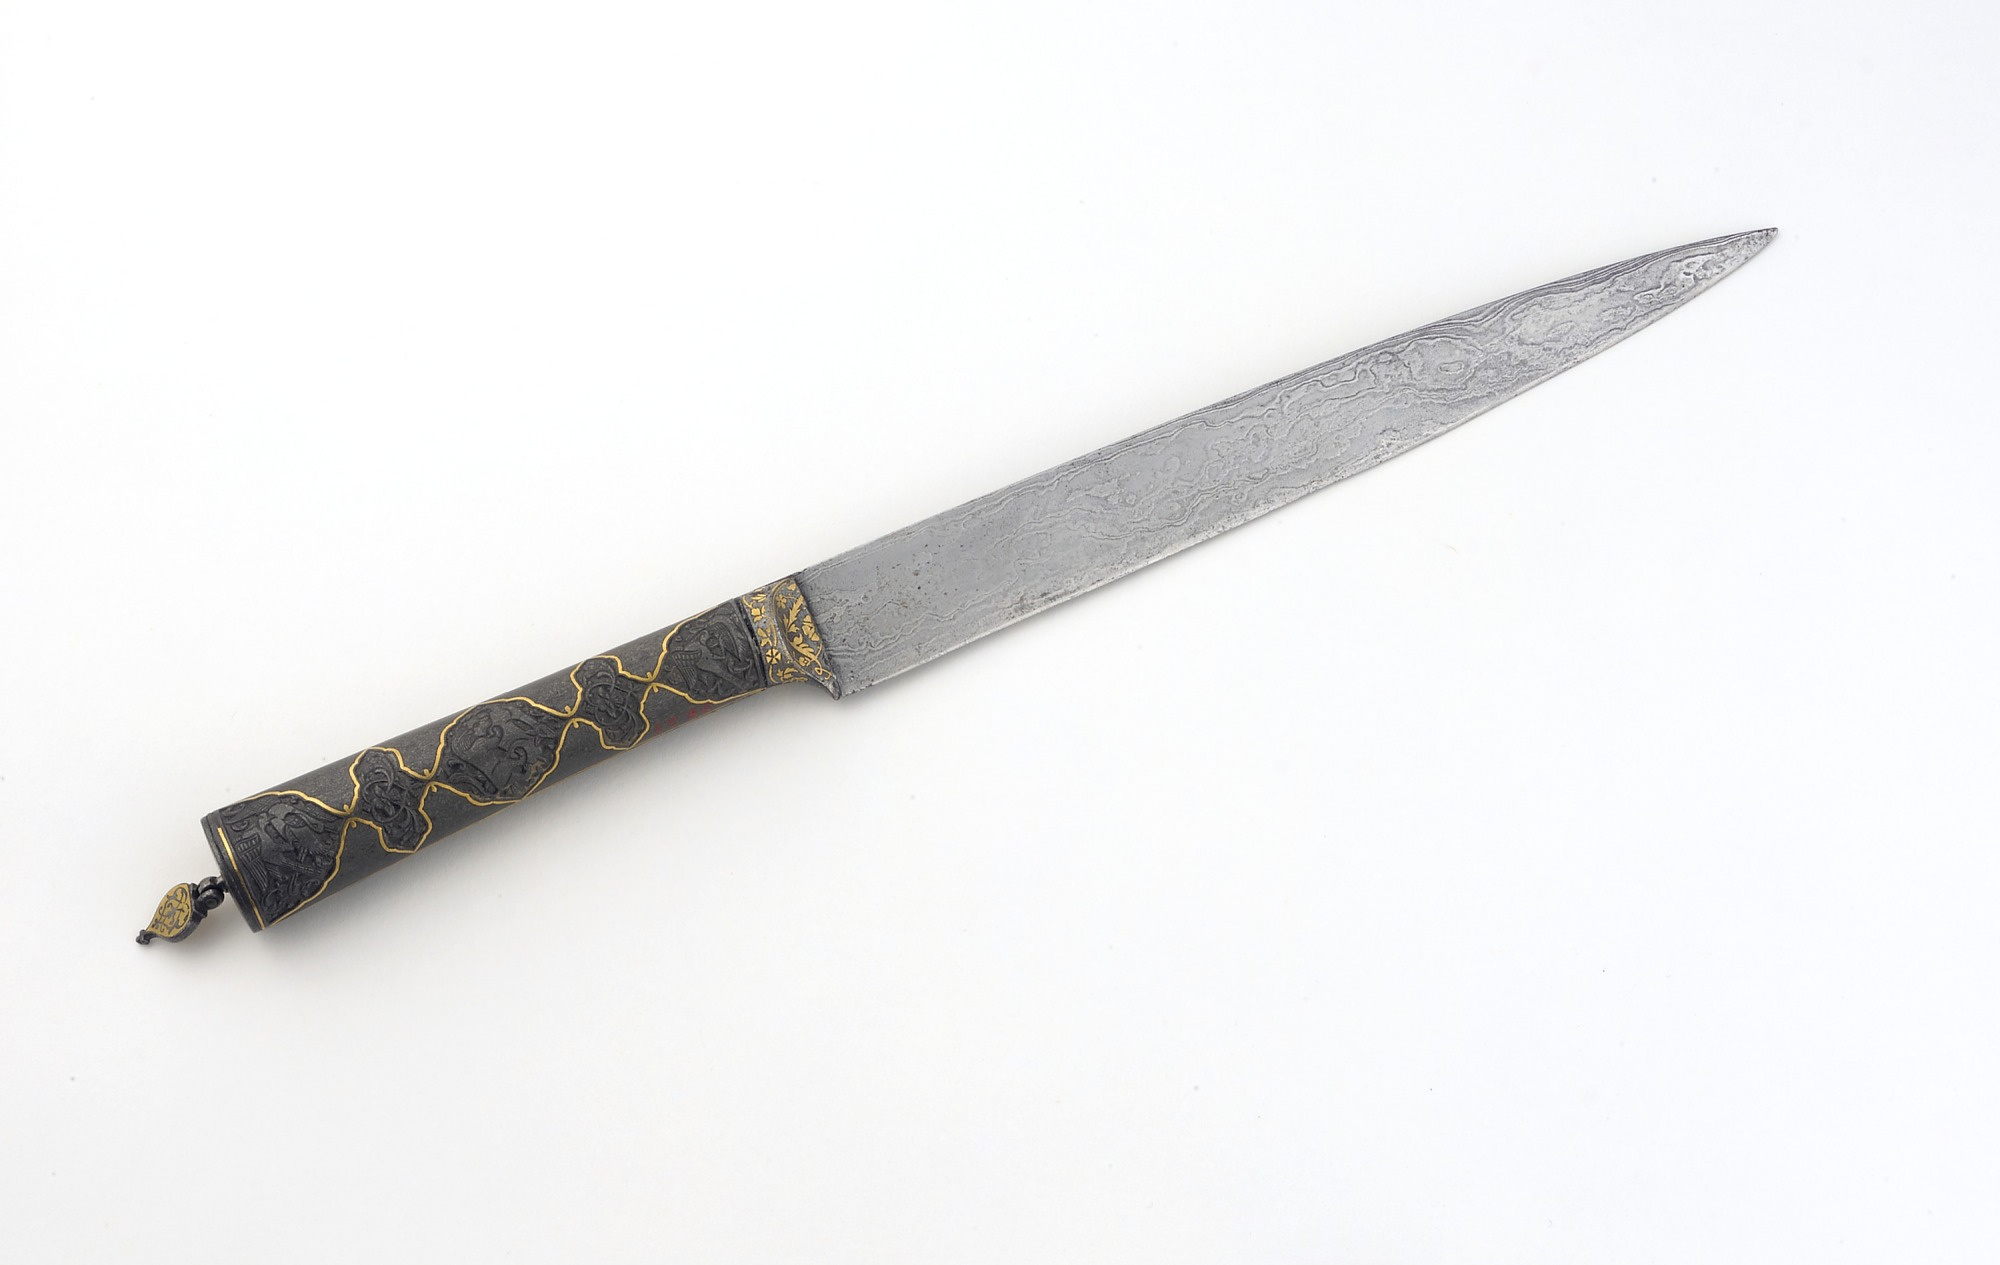 : Knife made for Jahangir, partially of meteoric iron